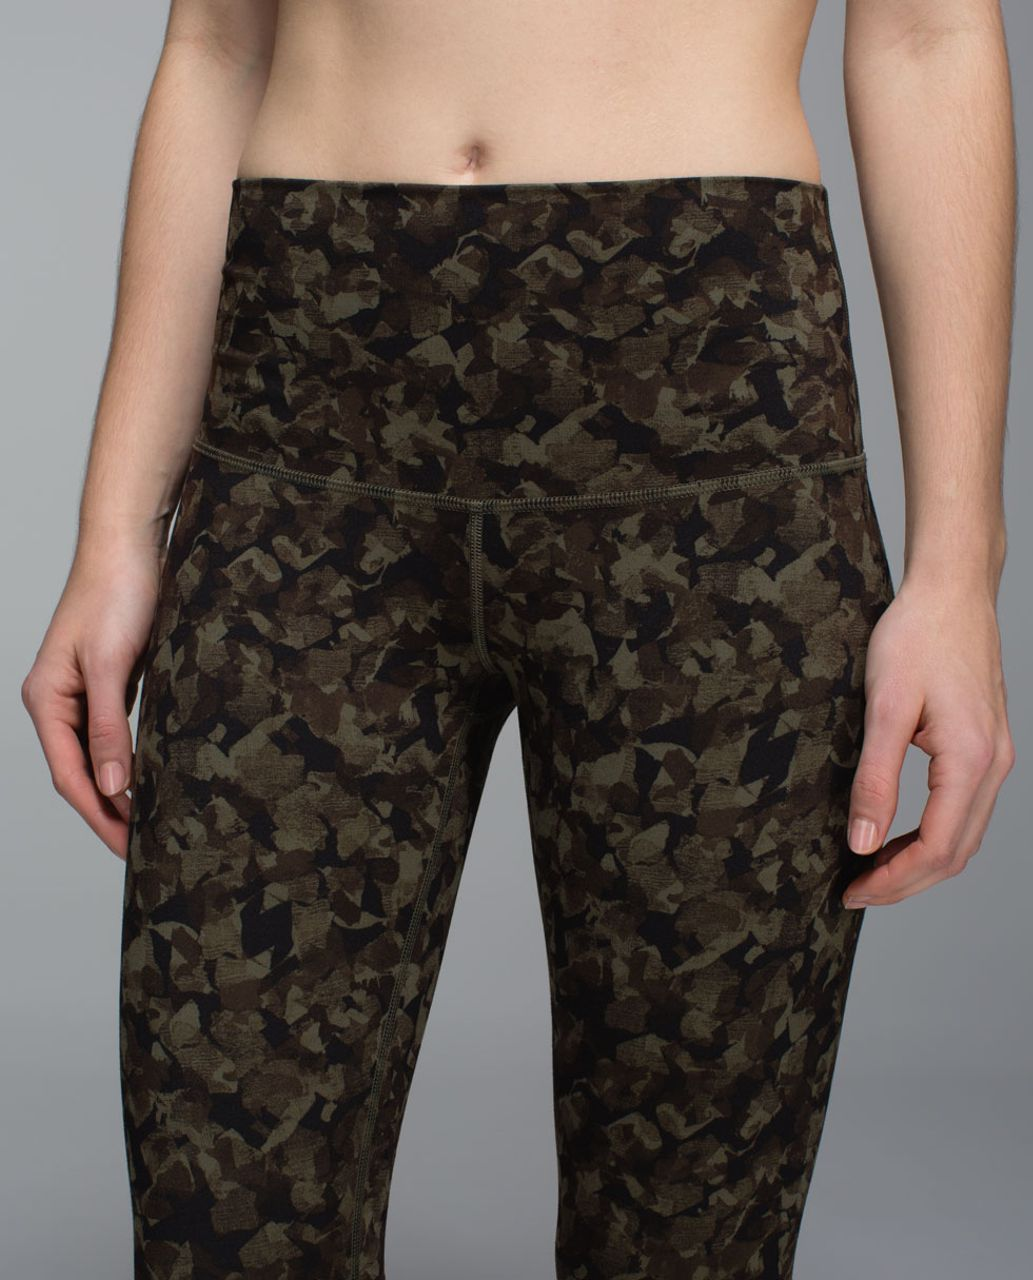 Lululemon Wunder Under Crop II *Full-On Luon (Roll Down) - Mystic Jungle Fatigue Green Black